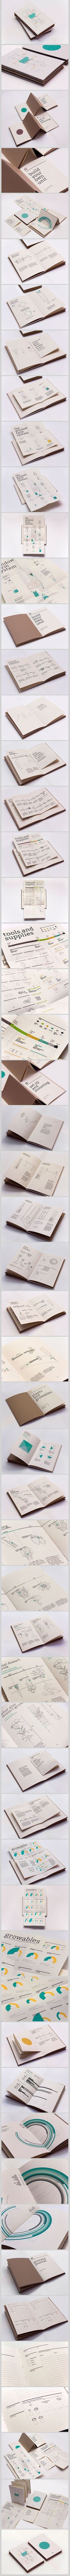 Window Farms: Information Design Book by Jiani Lu on Béhance | LAYOUT #layout #book #editorial #information #design book